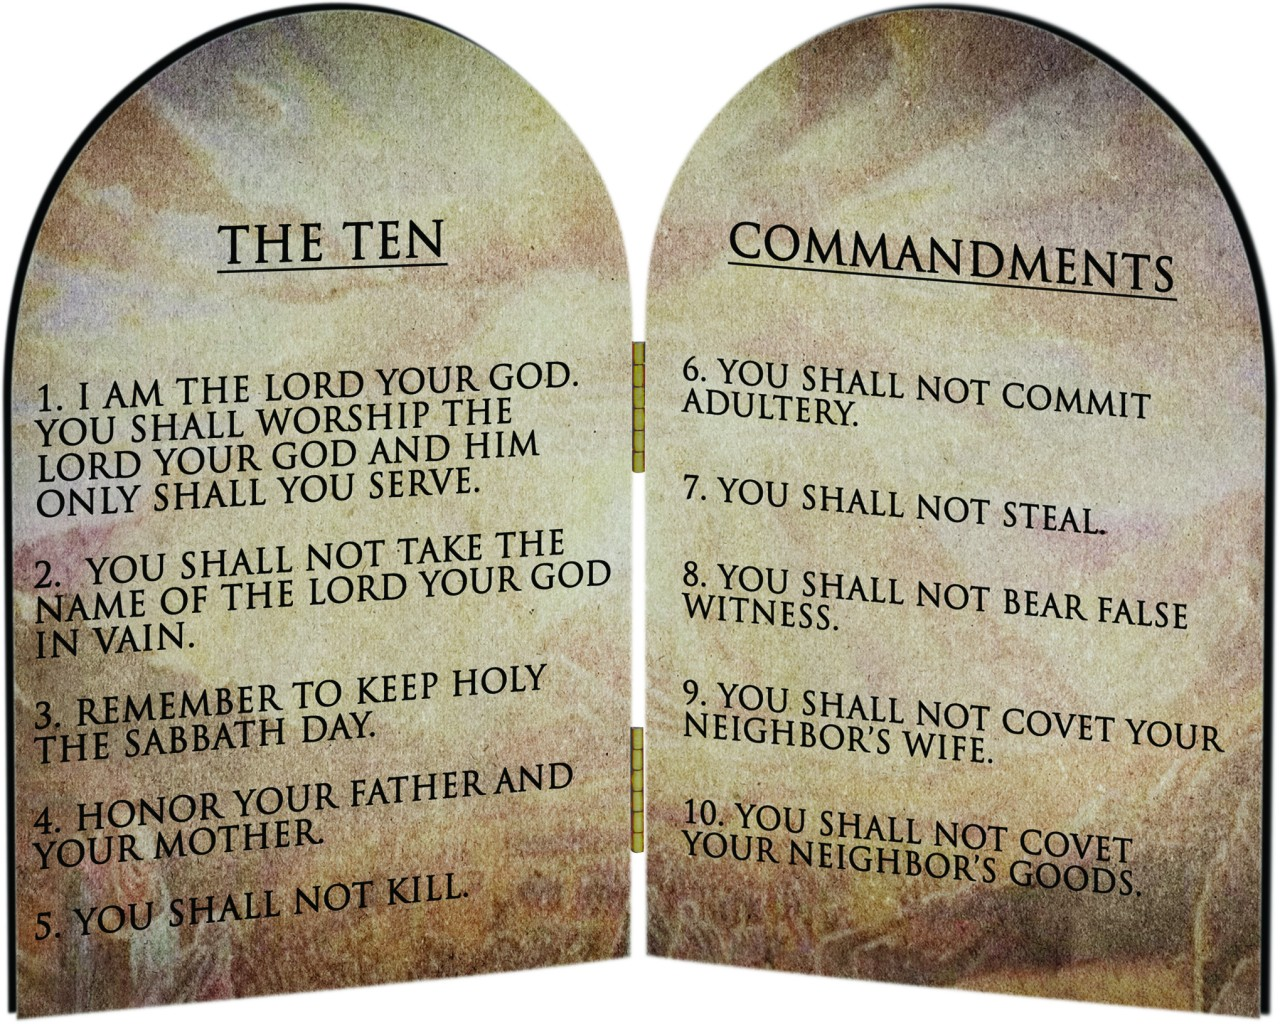 The Most Revolutionary Part of the Ten Commandments | HuffPost